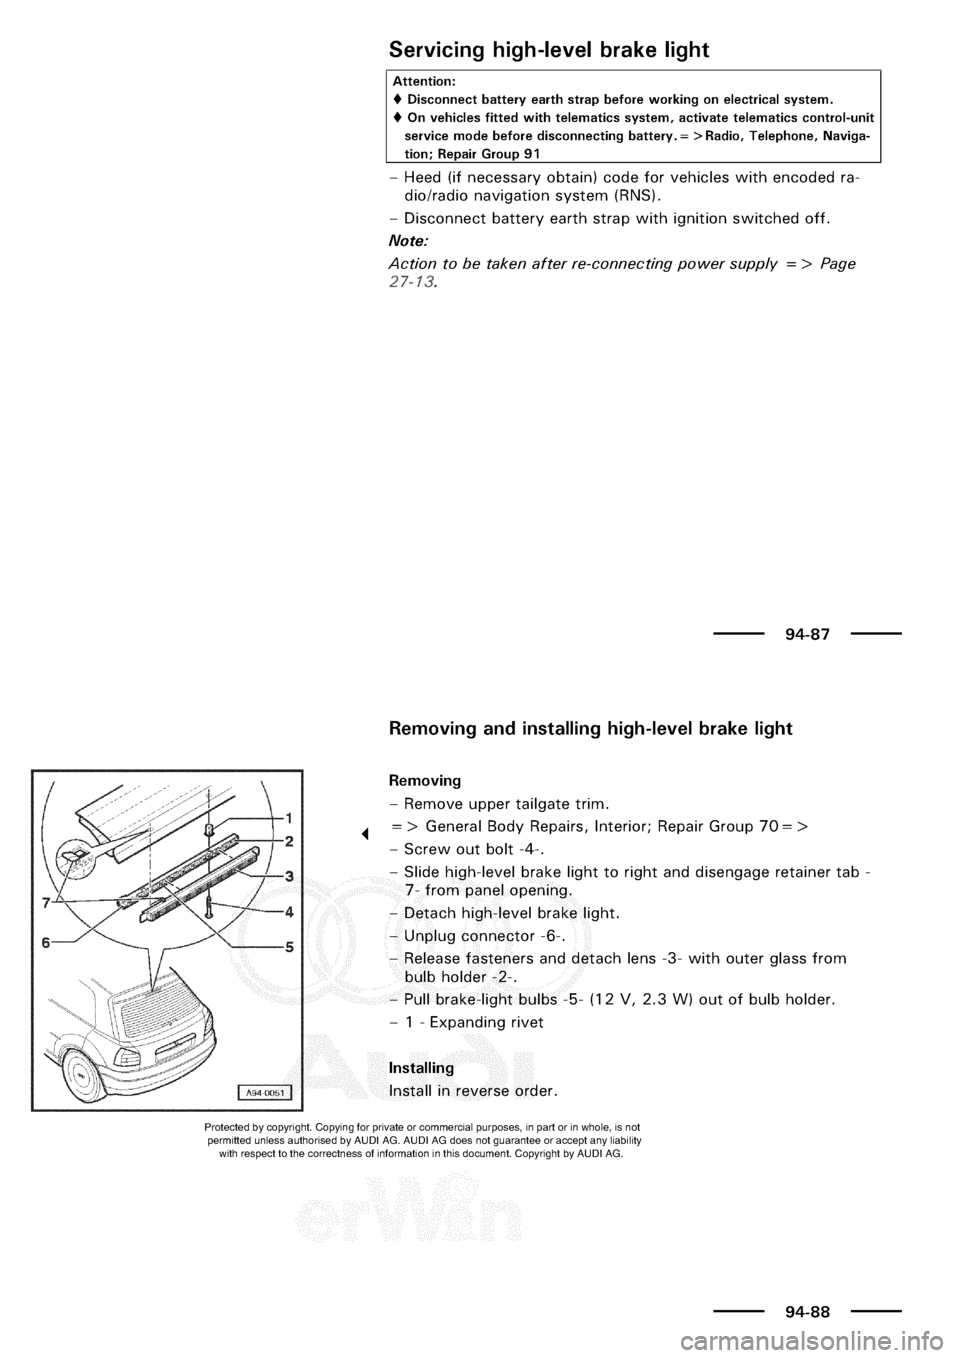 AUDI A3 2003 8L / 1.G Electrical System Workshop Manual